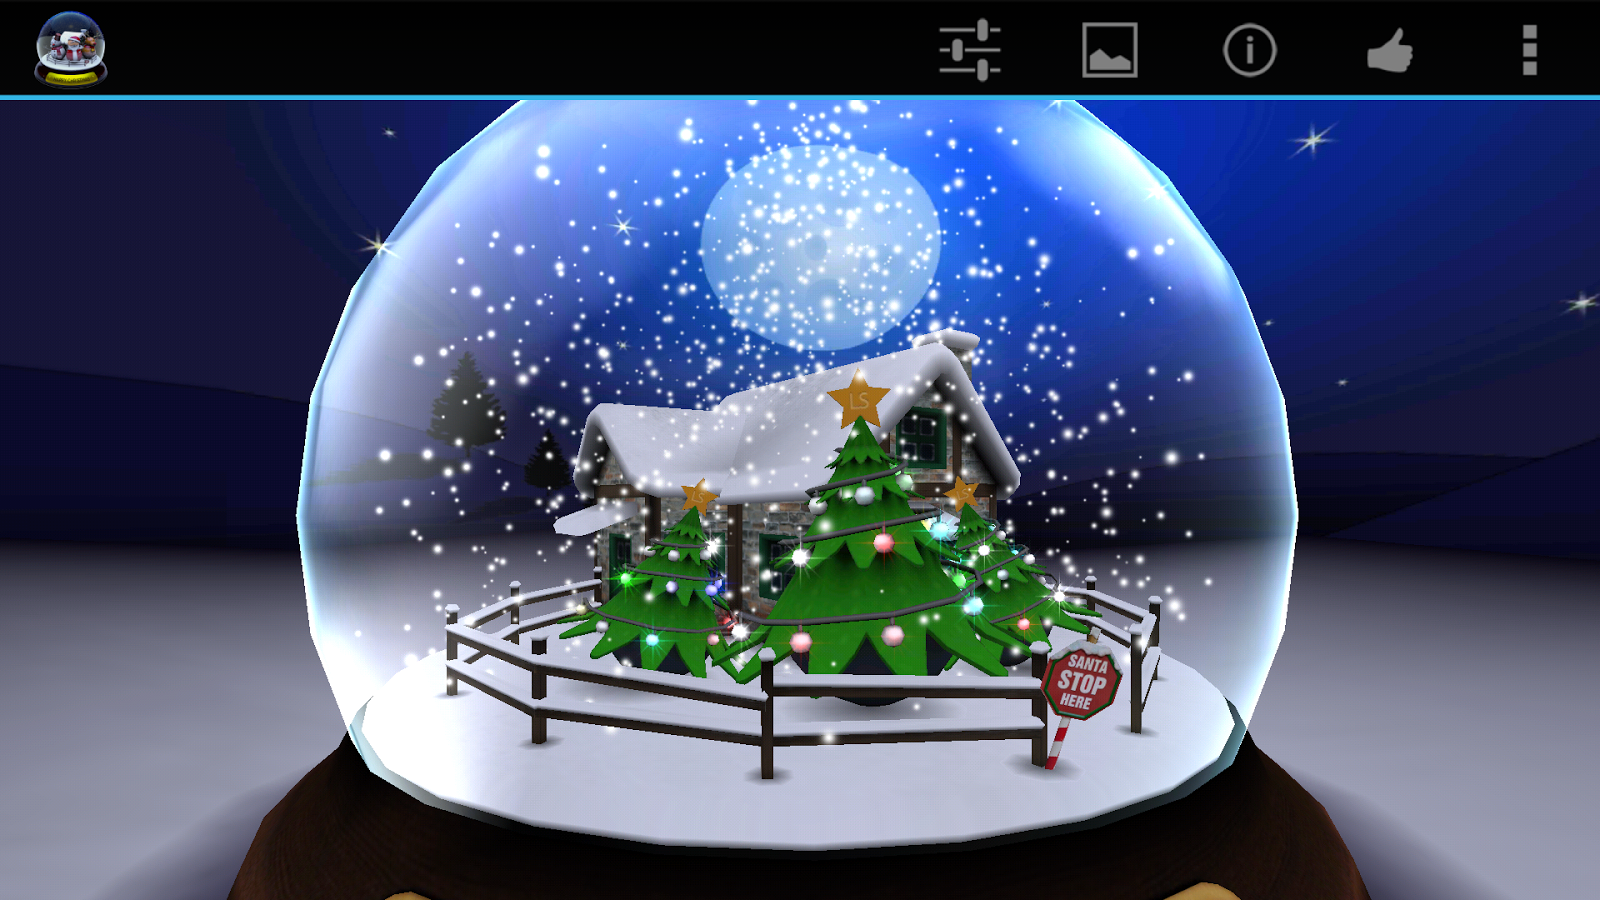 Advent Calendar Live Wallpaper : D christmas advent snow globe android apps on google play